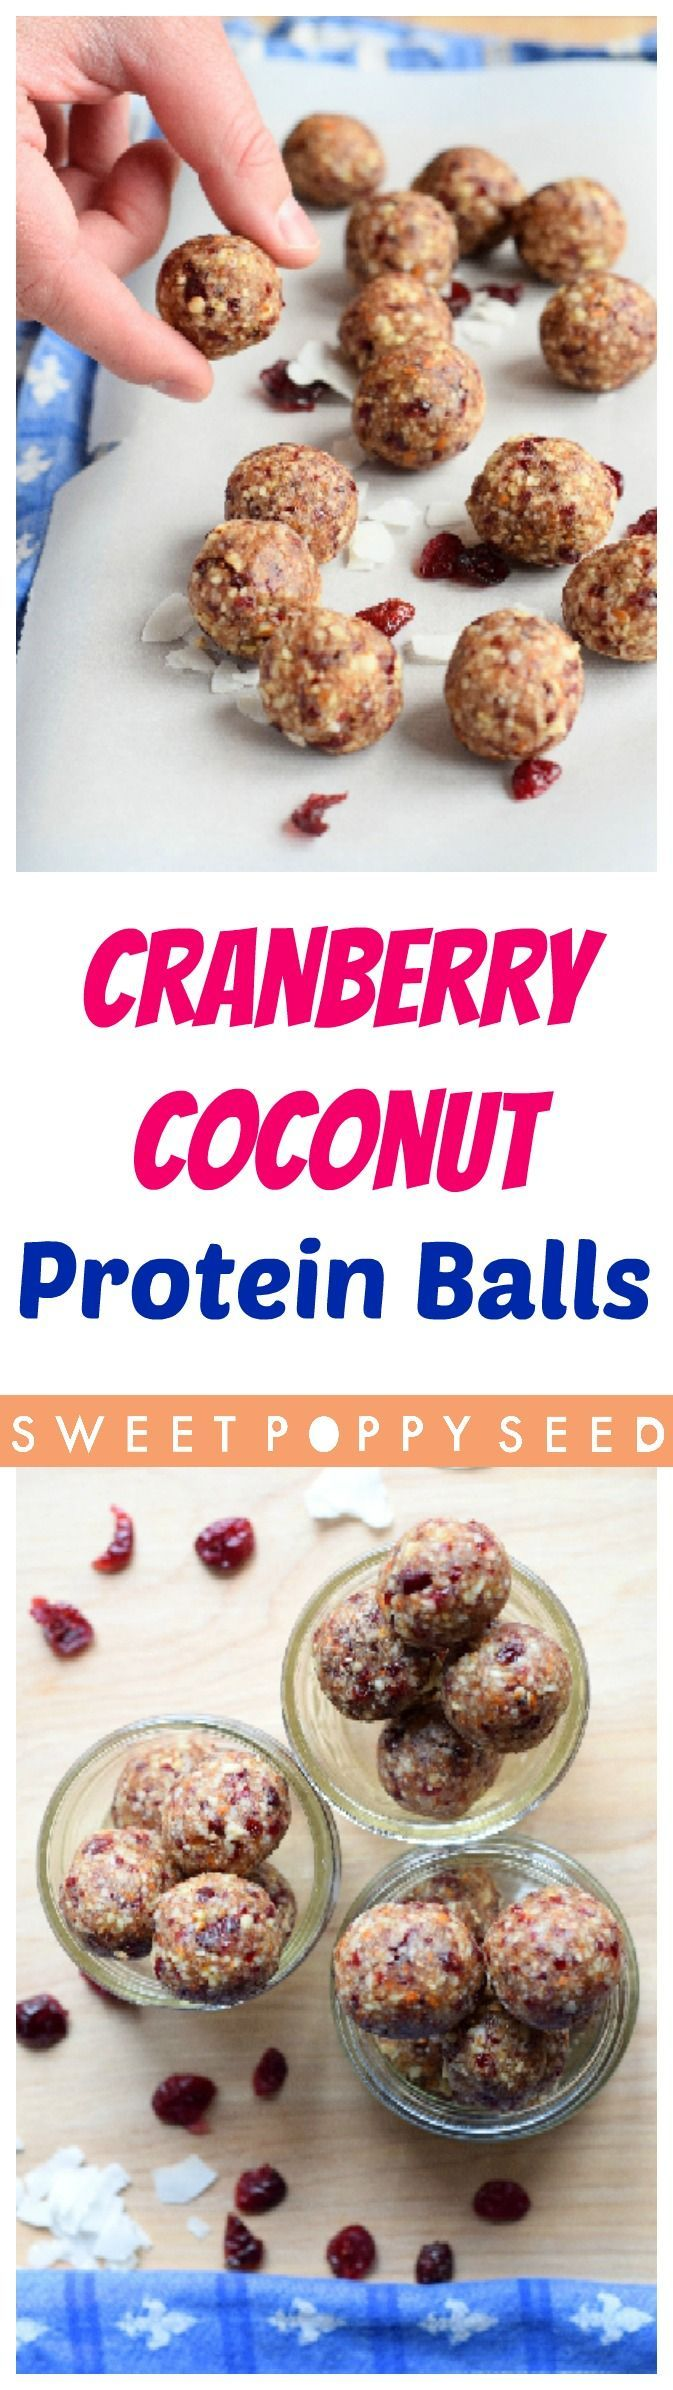 Insanely delicious and nutritious snacks packed with protein! Perfect for busy adults and kids!